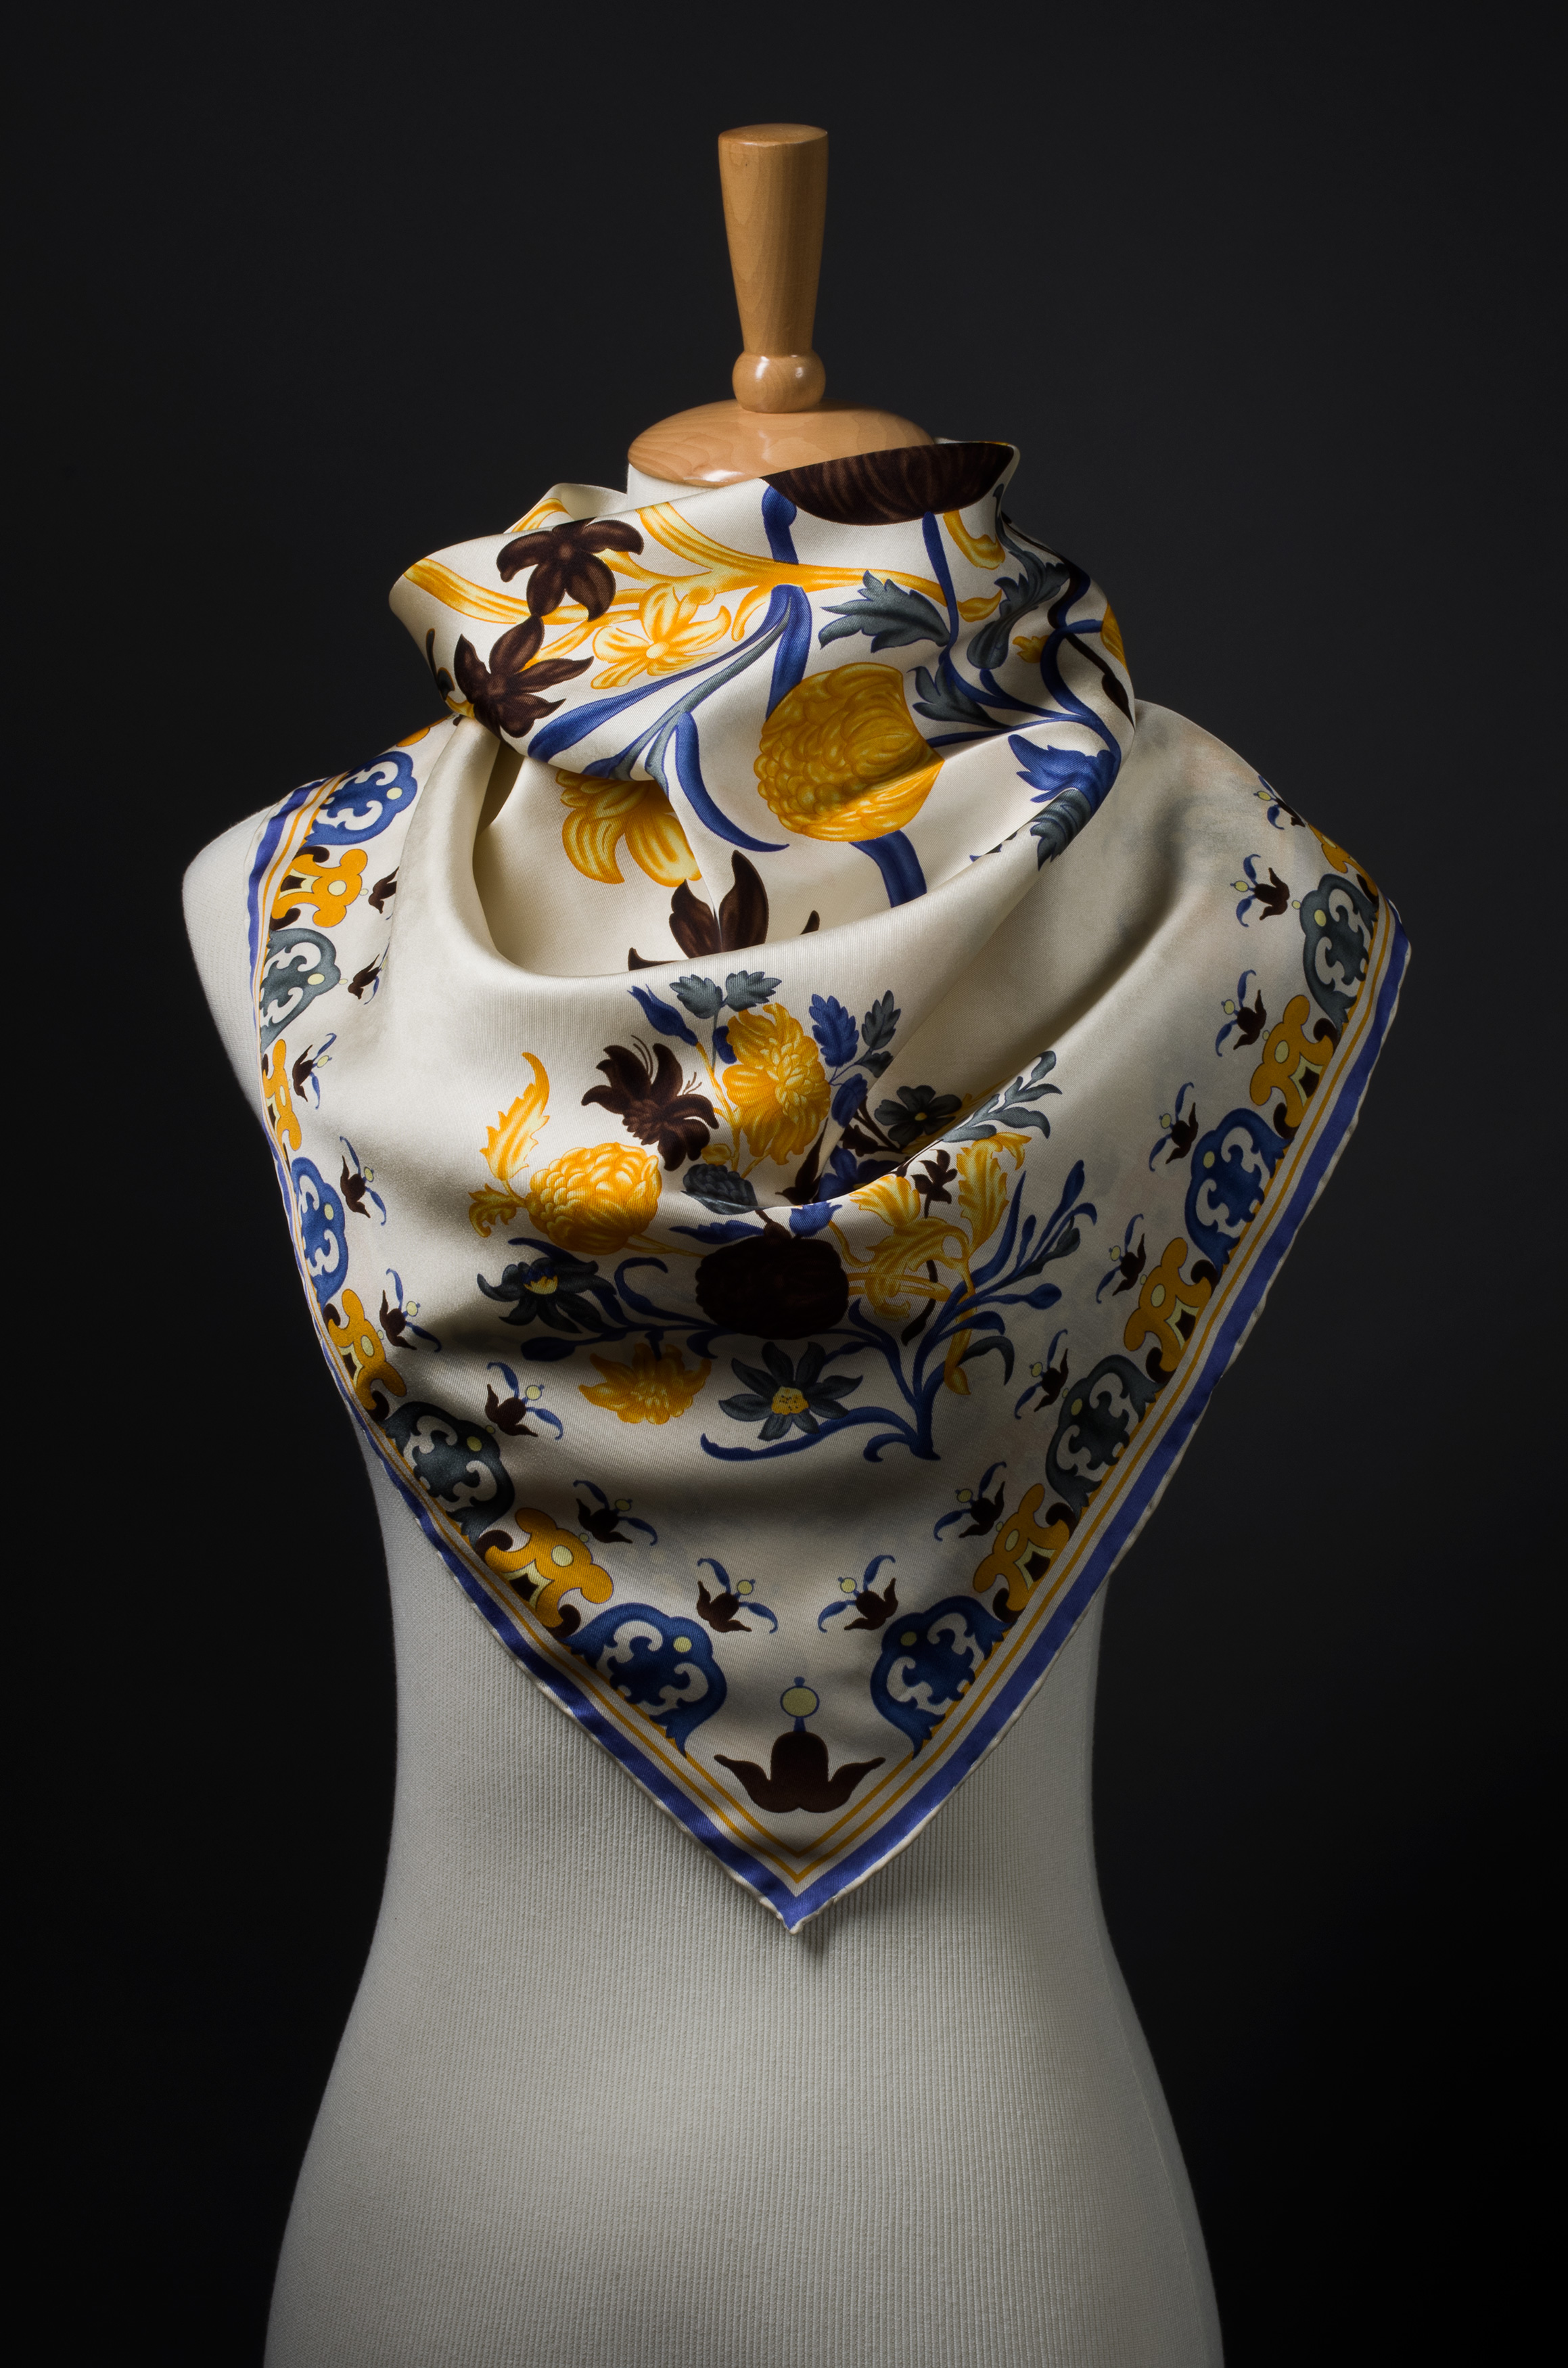 2010-Gala-Scarf-on-Form